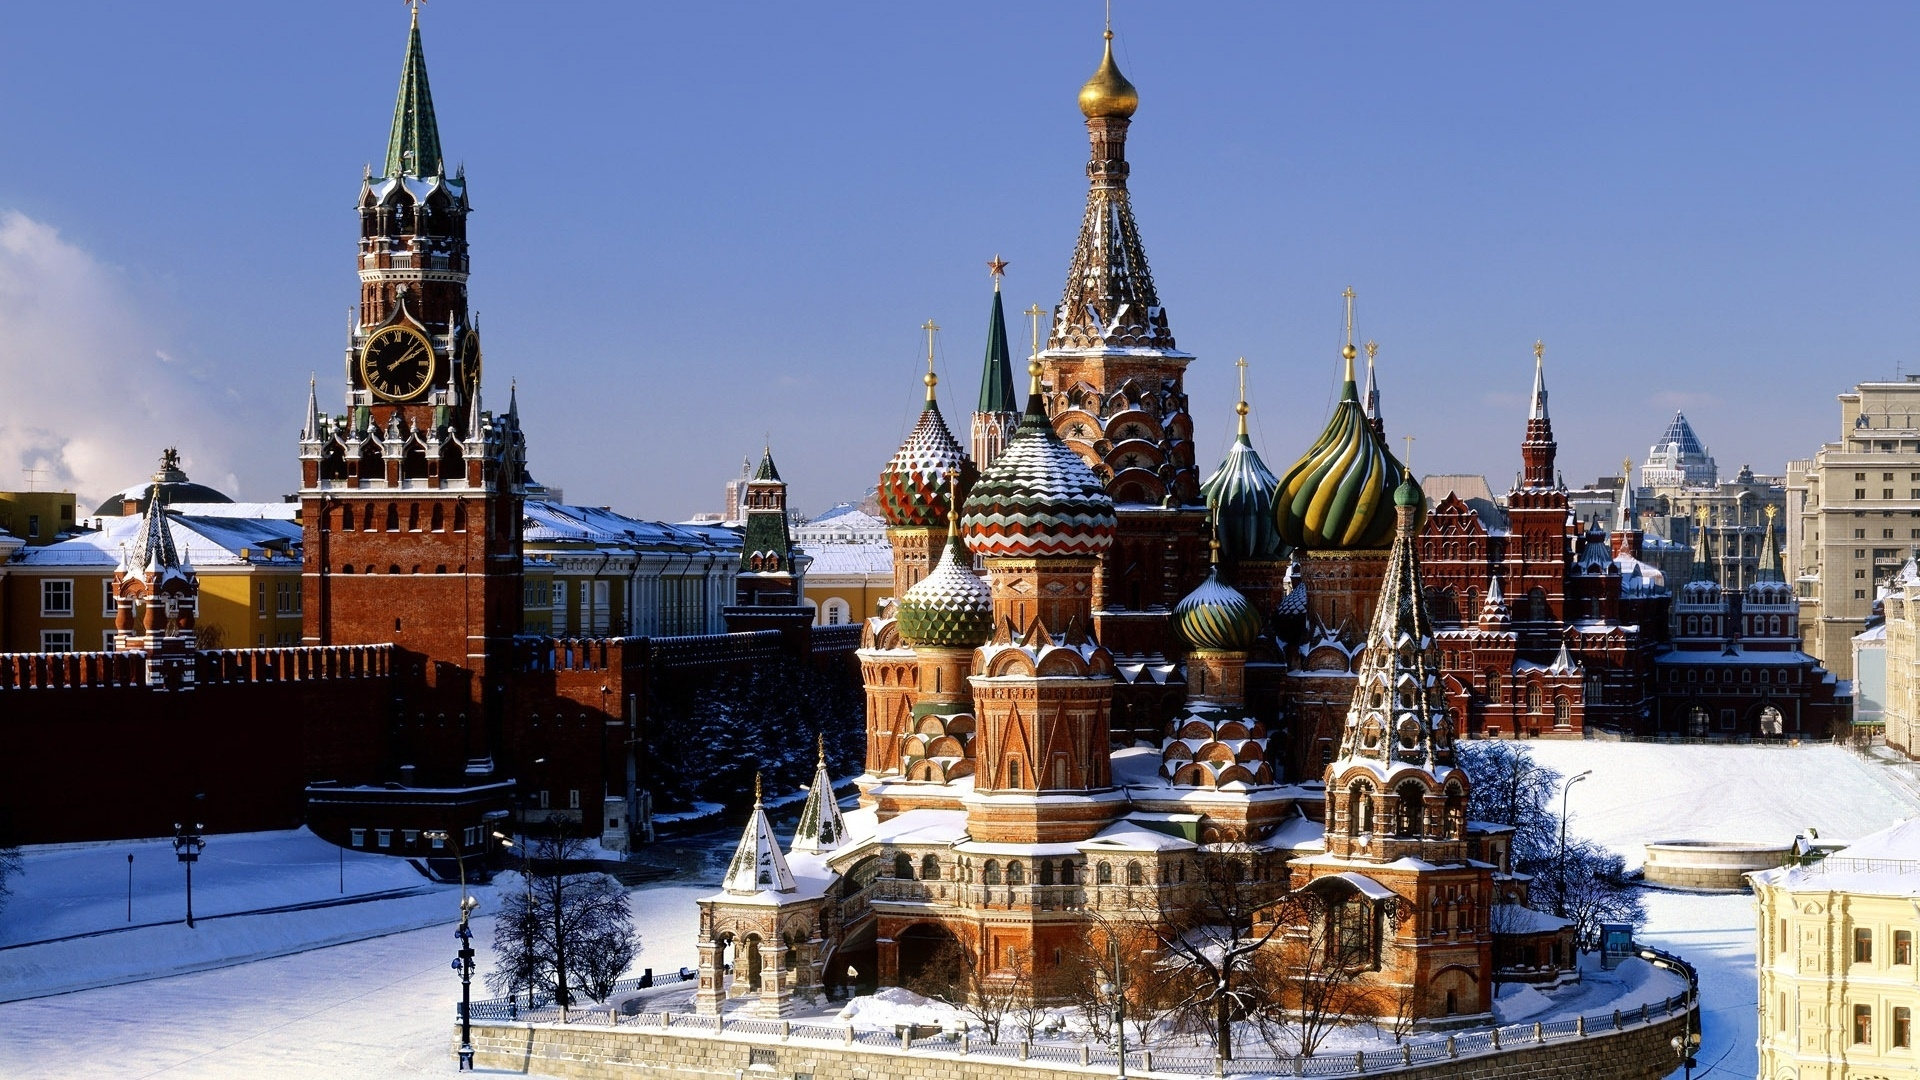 moscow_kremlin_red_square_russia_capital_59491_1920x1080.jpg